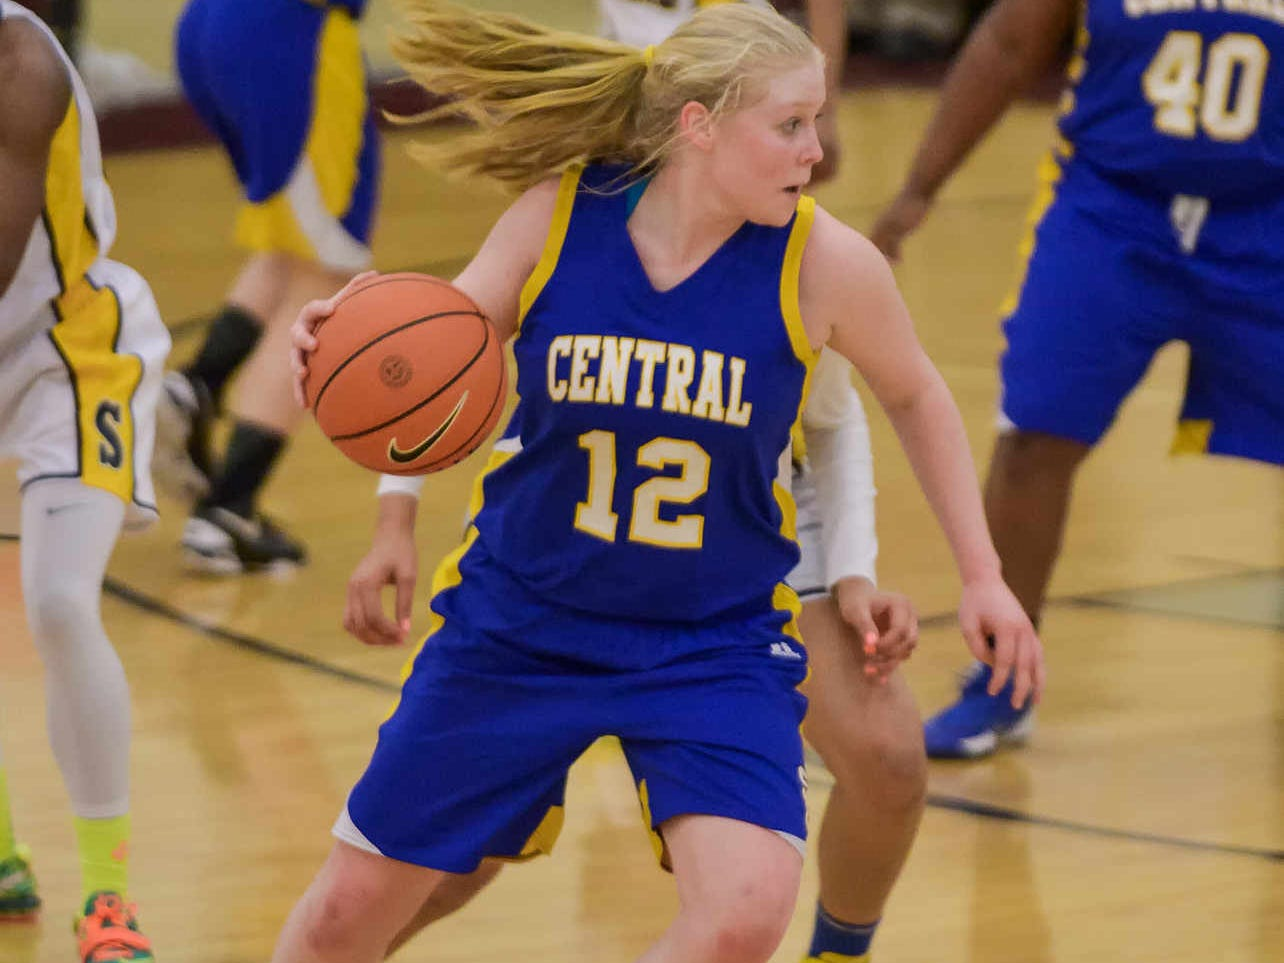 Emily Truitt (#12, Sussex Central) takes the ball down the court. DIAA girls basketball quarterfinal between Sanford and Sussex Central. DOUG CURRAN/SPECIAL TO THE NEWS JOURNAL